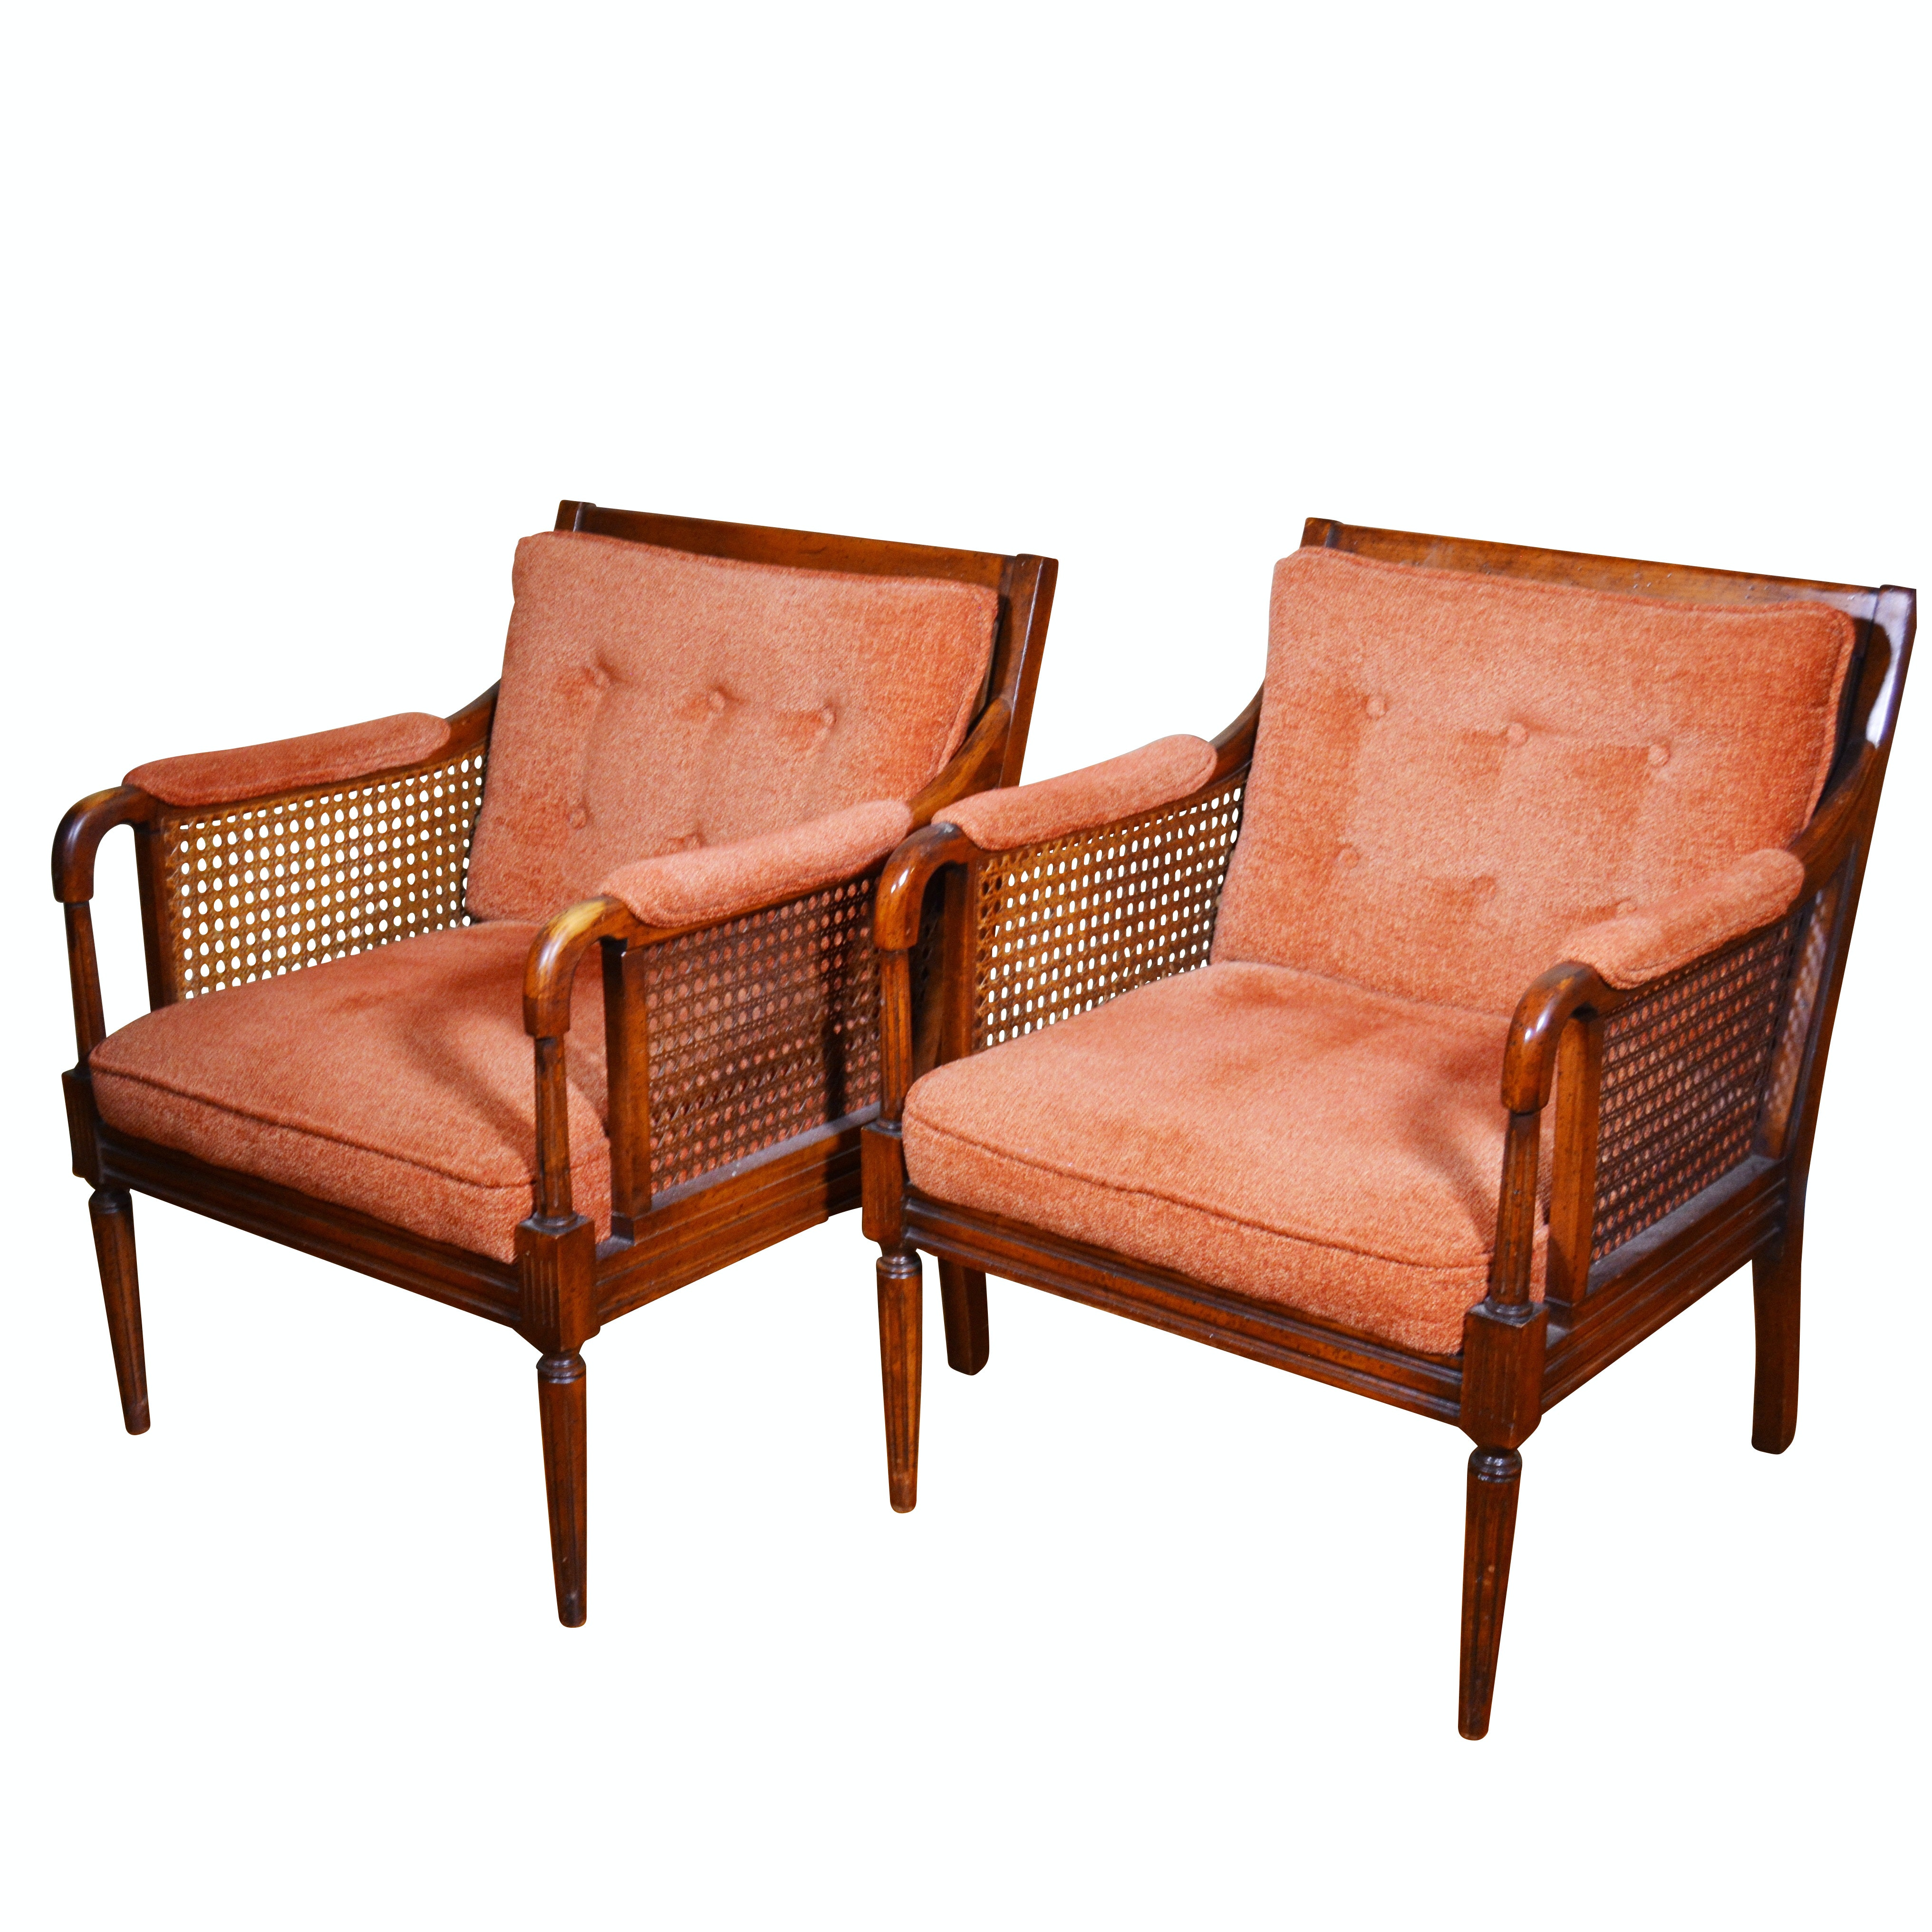 Cane and Fruitwood Upholstered Armchairs, Mid-Late 20th Century